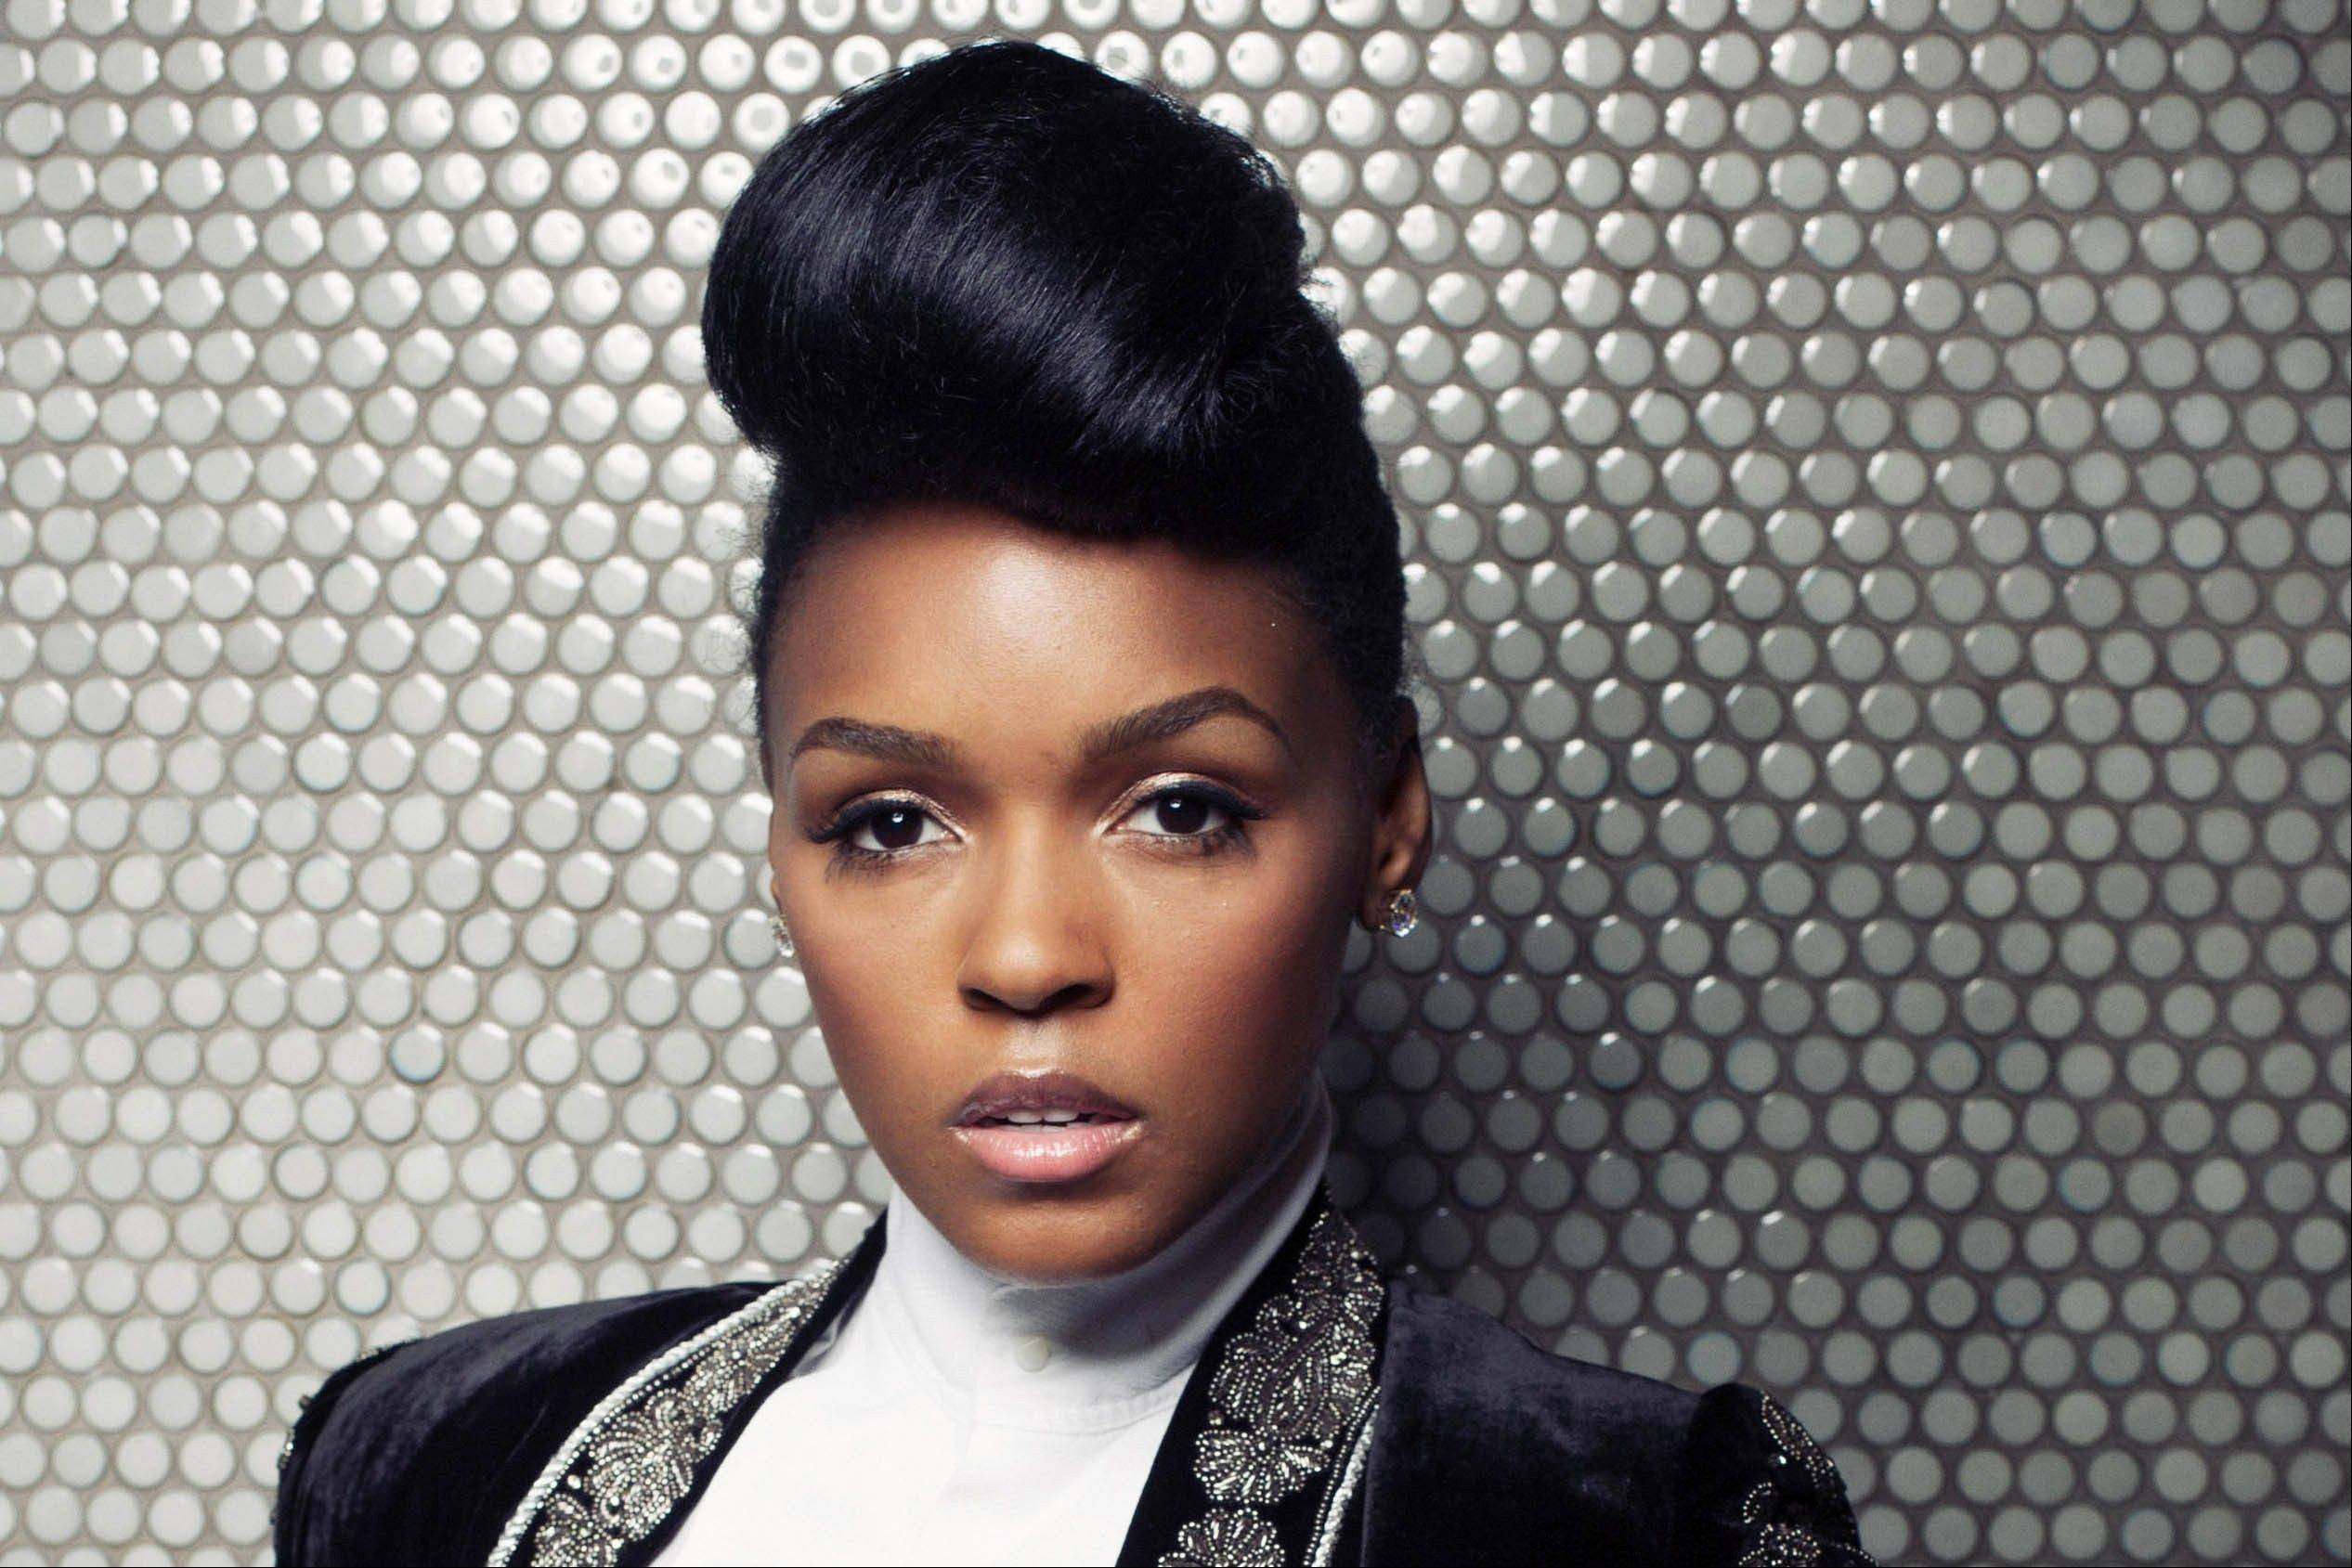 American R&B and soul musician, composer and record producer Janelle Monae released her full-length sophomore album, �The Electric Lady,� last week.